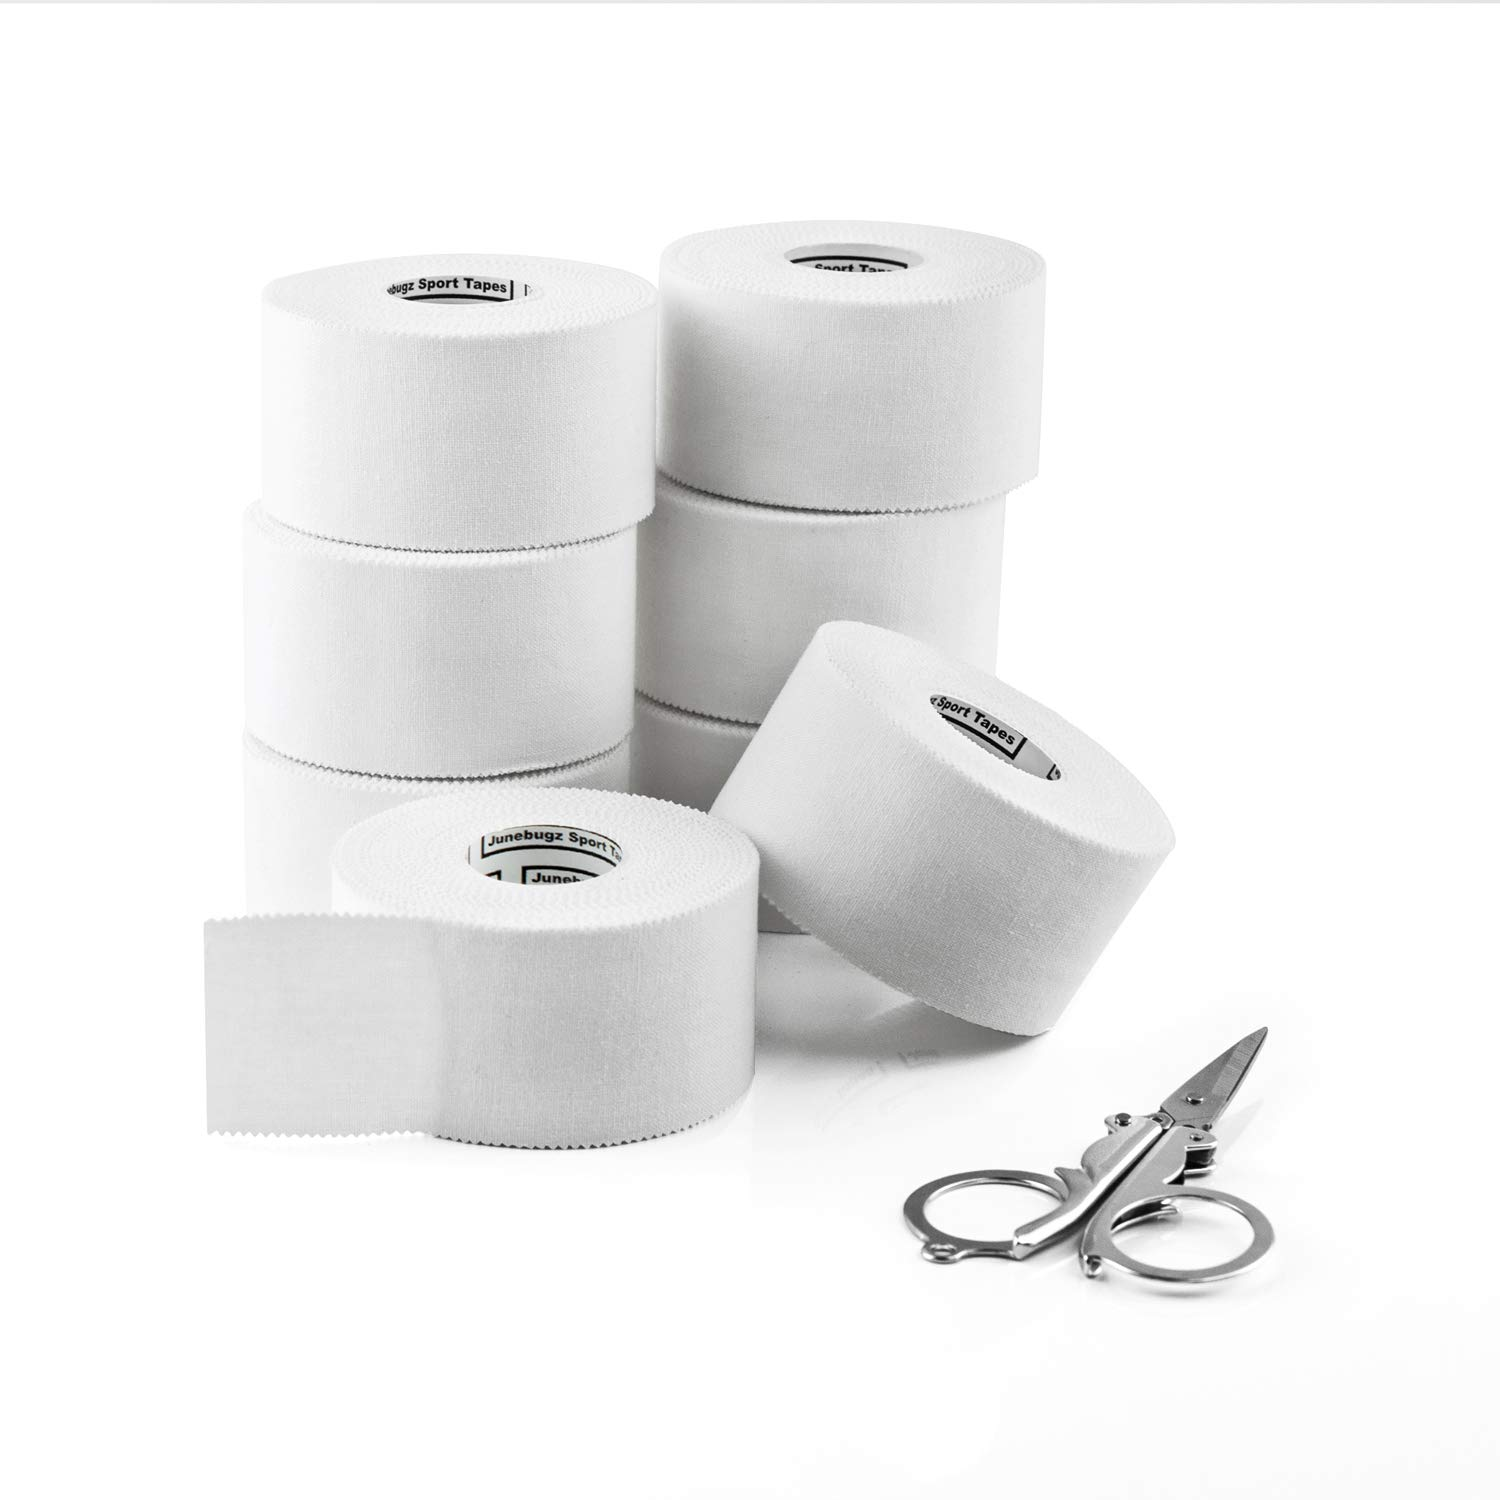 Sport Tape White (8 Rolls |1.5 inch x 45 Feet/Roll)- JuneBugz Zinc Oxide Medical Athletic Tape Cotton/First Aid Injury Wrap/Zigzag Edge/Easy Tearing/No Sticky Residue or Latex + Free Folding Scissors